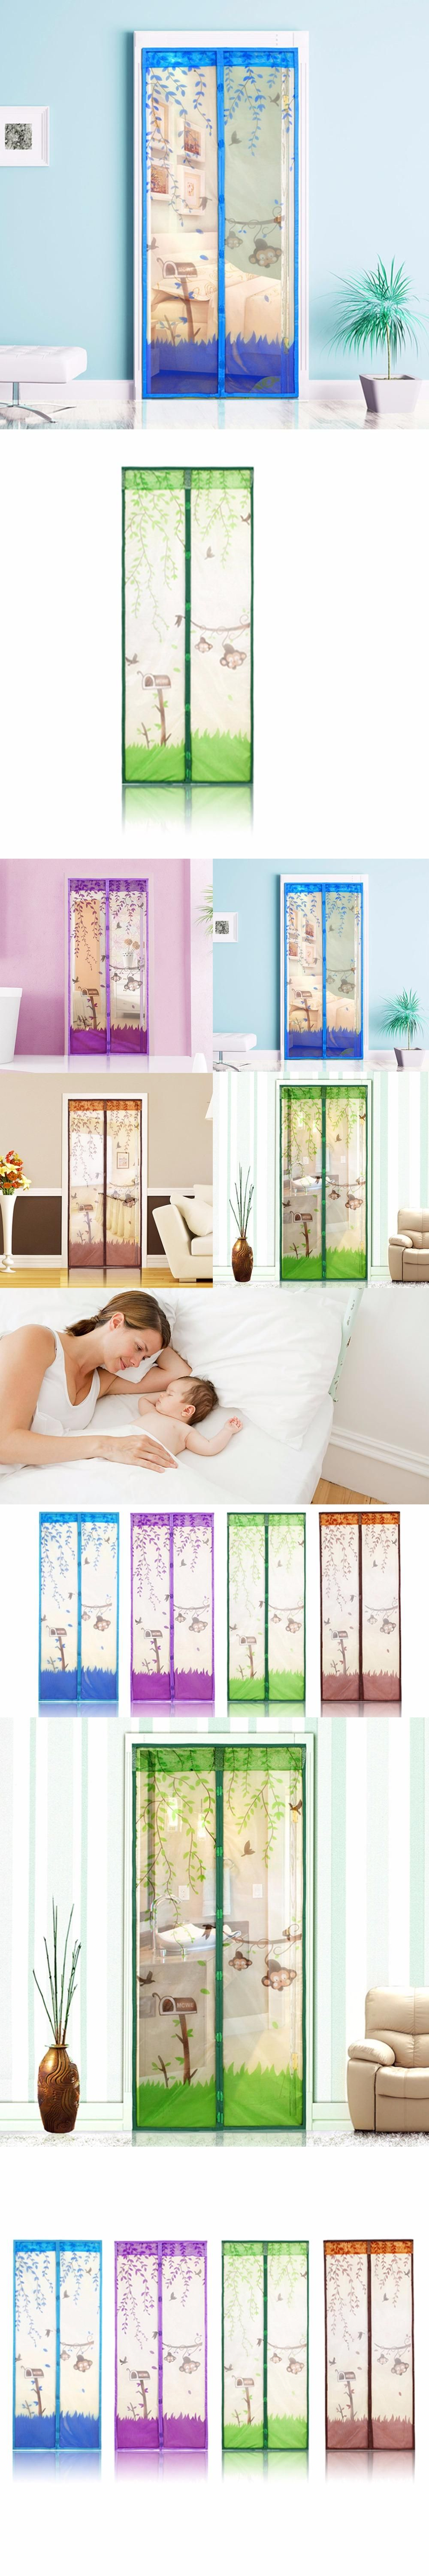 1 pc Home Magnetic Mesh Screen Door Mosquito Net Curtain Protect